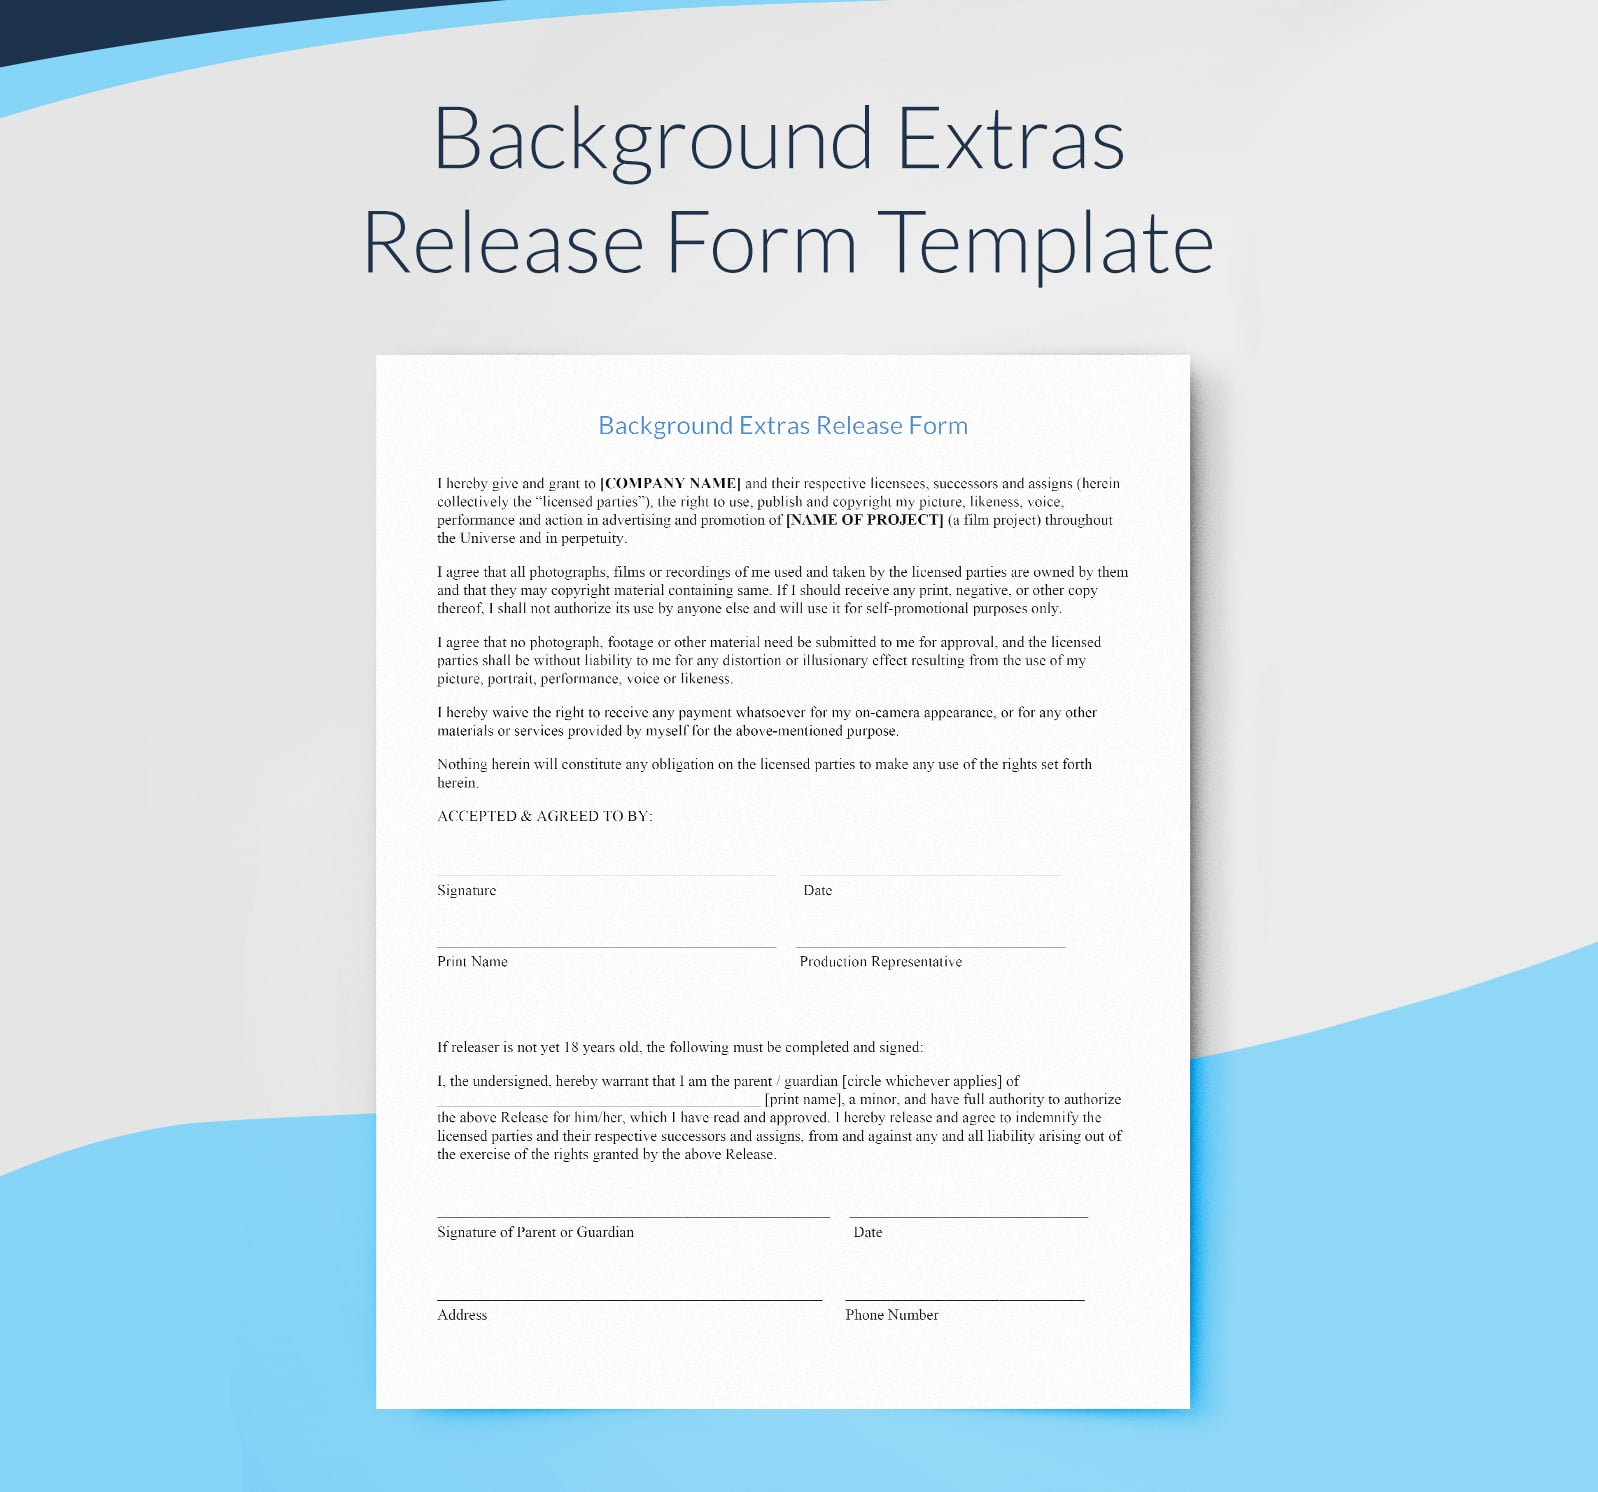 Background Extras Release Form   Free Filmmaking Template